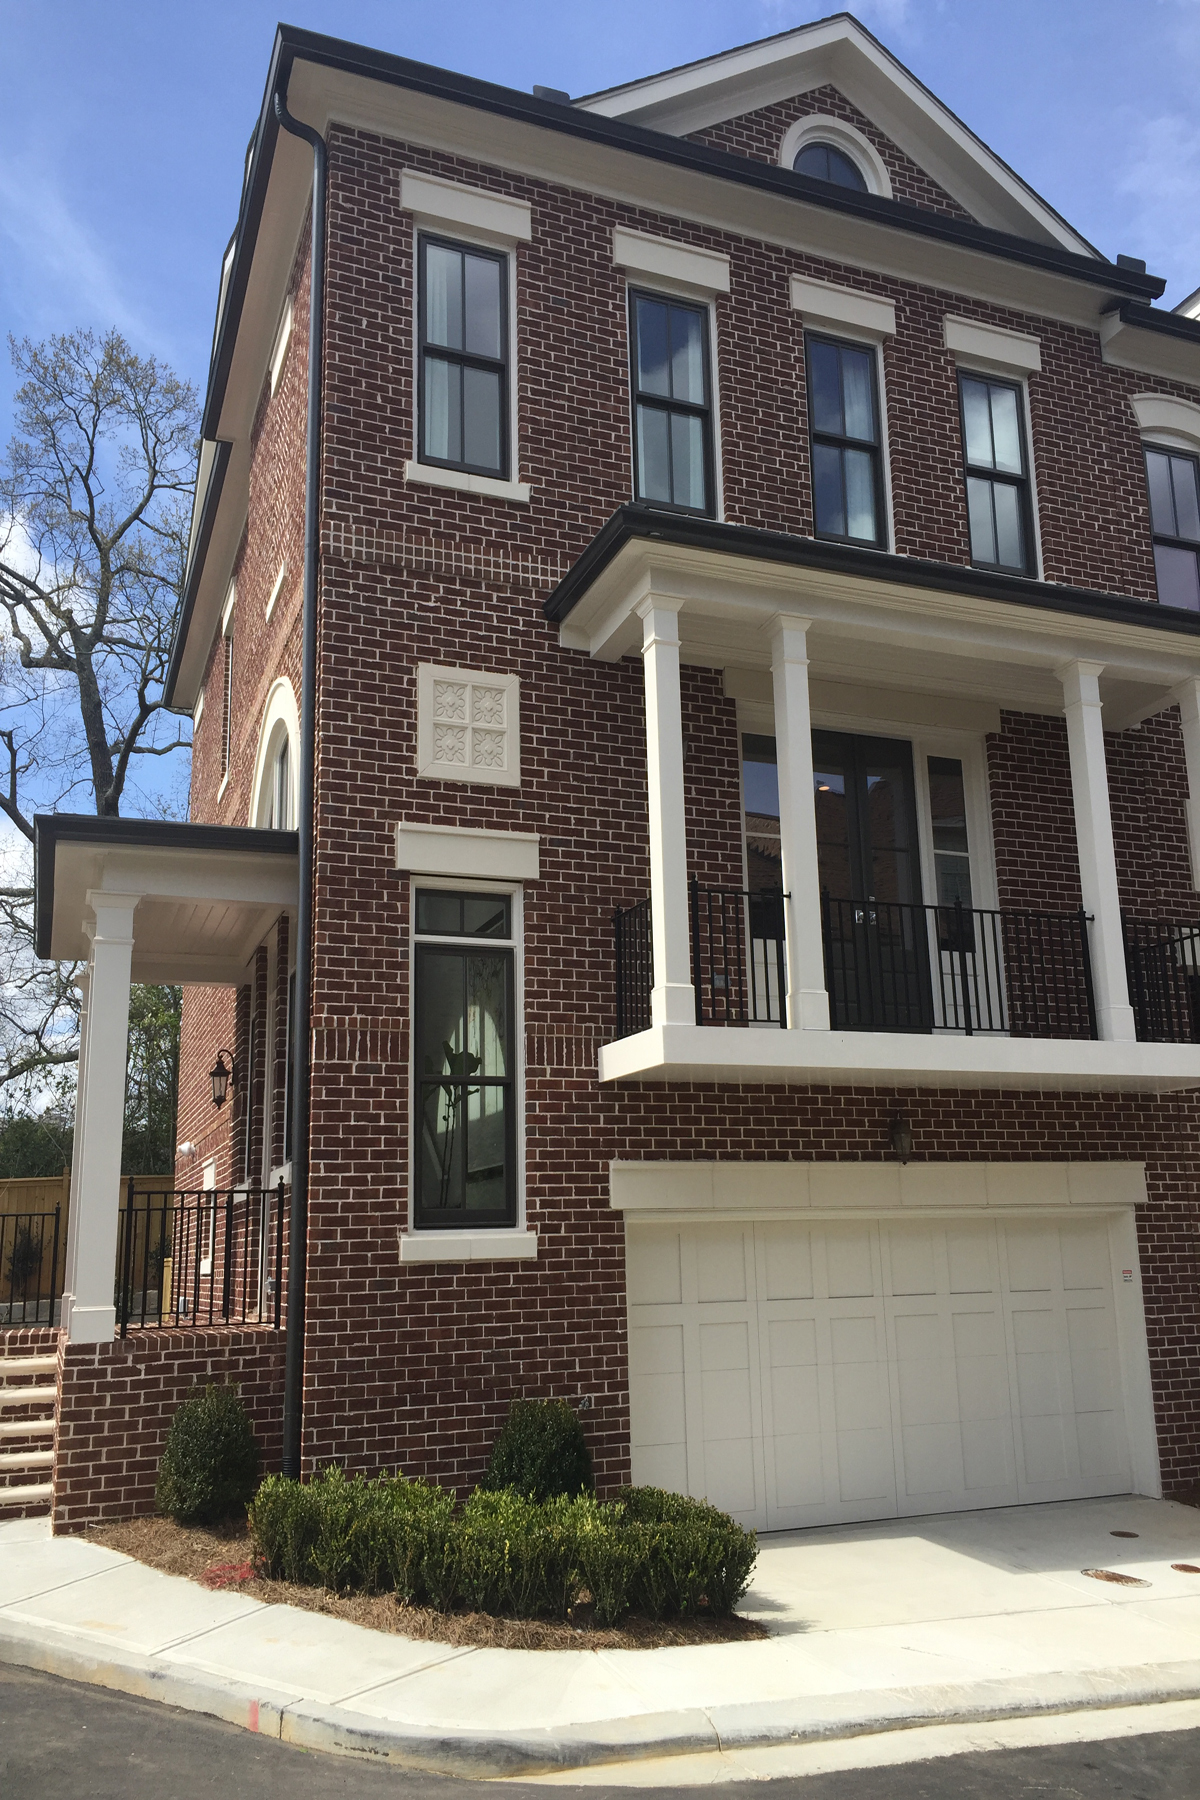 Townhouse for Sale at Beautifully Crafted Townhome 3728 Paige Way Atlanta, Georgia, 30319 United States